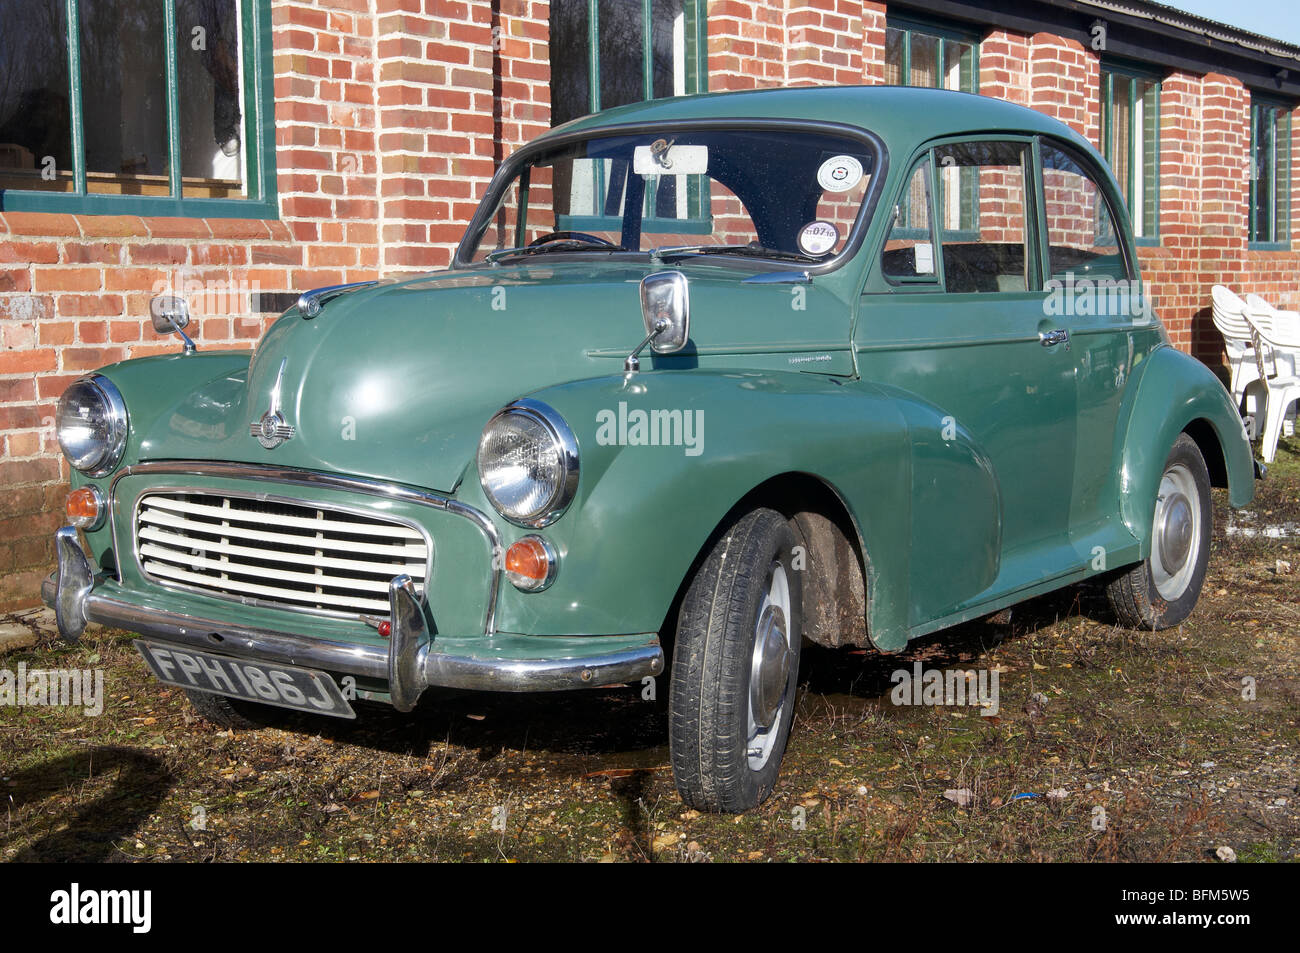 Morris Minor 1000 of 1970 - last year of manufacture  - in original condition and classic green paint. Stock Photo